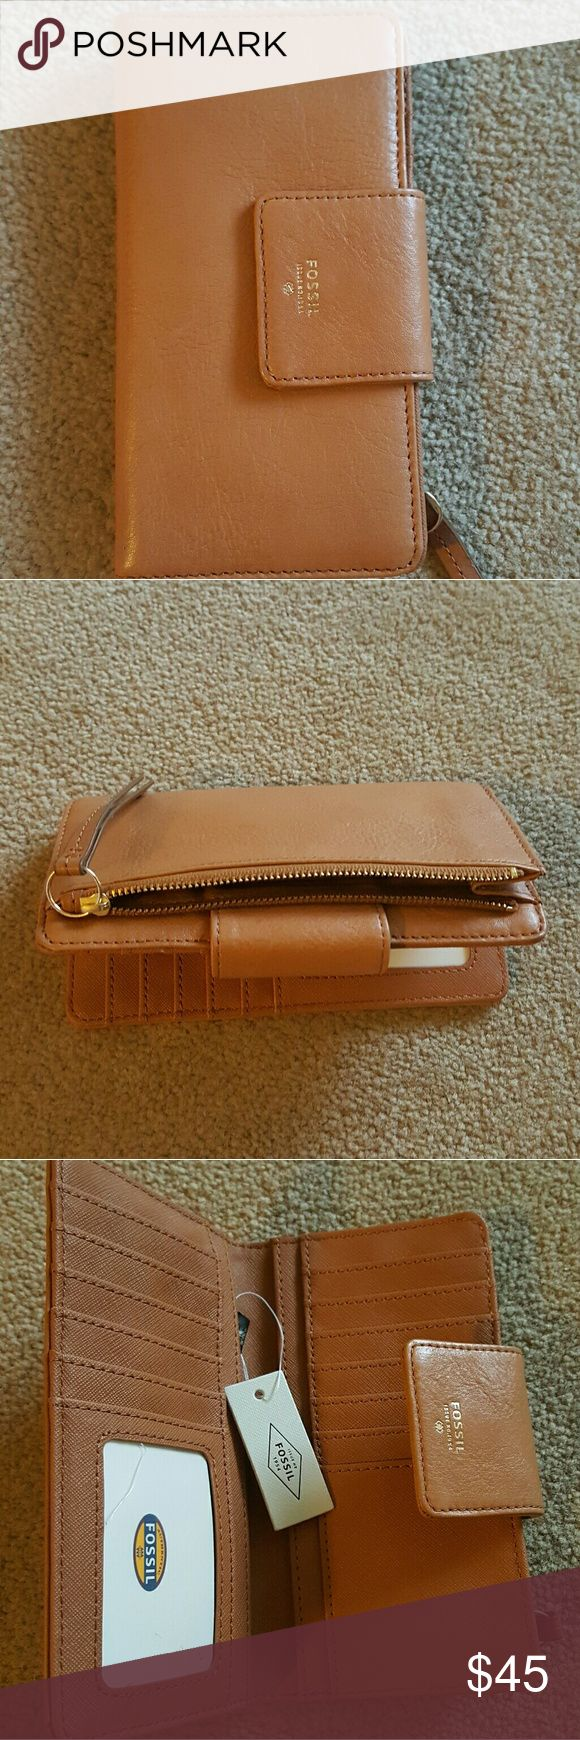 FOSSIL Tab Clutch Brand new tan colored Fossil leather clutch with 12 card slots. Make me an offer! Fossil Bags Wallets